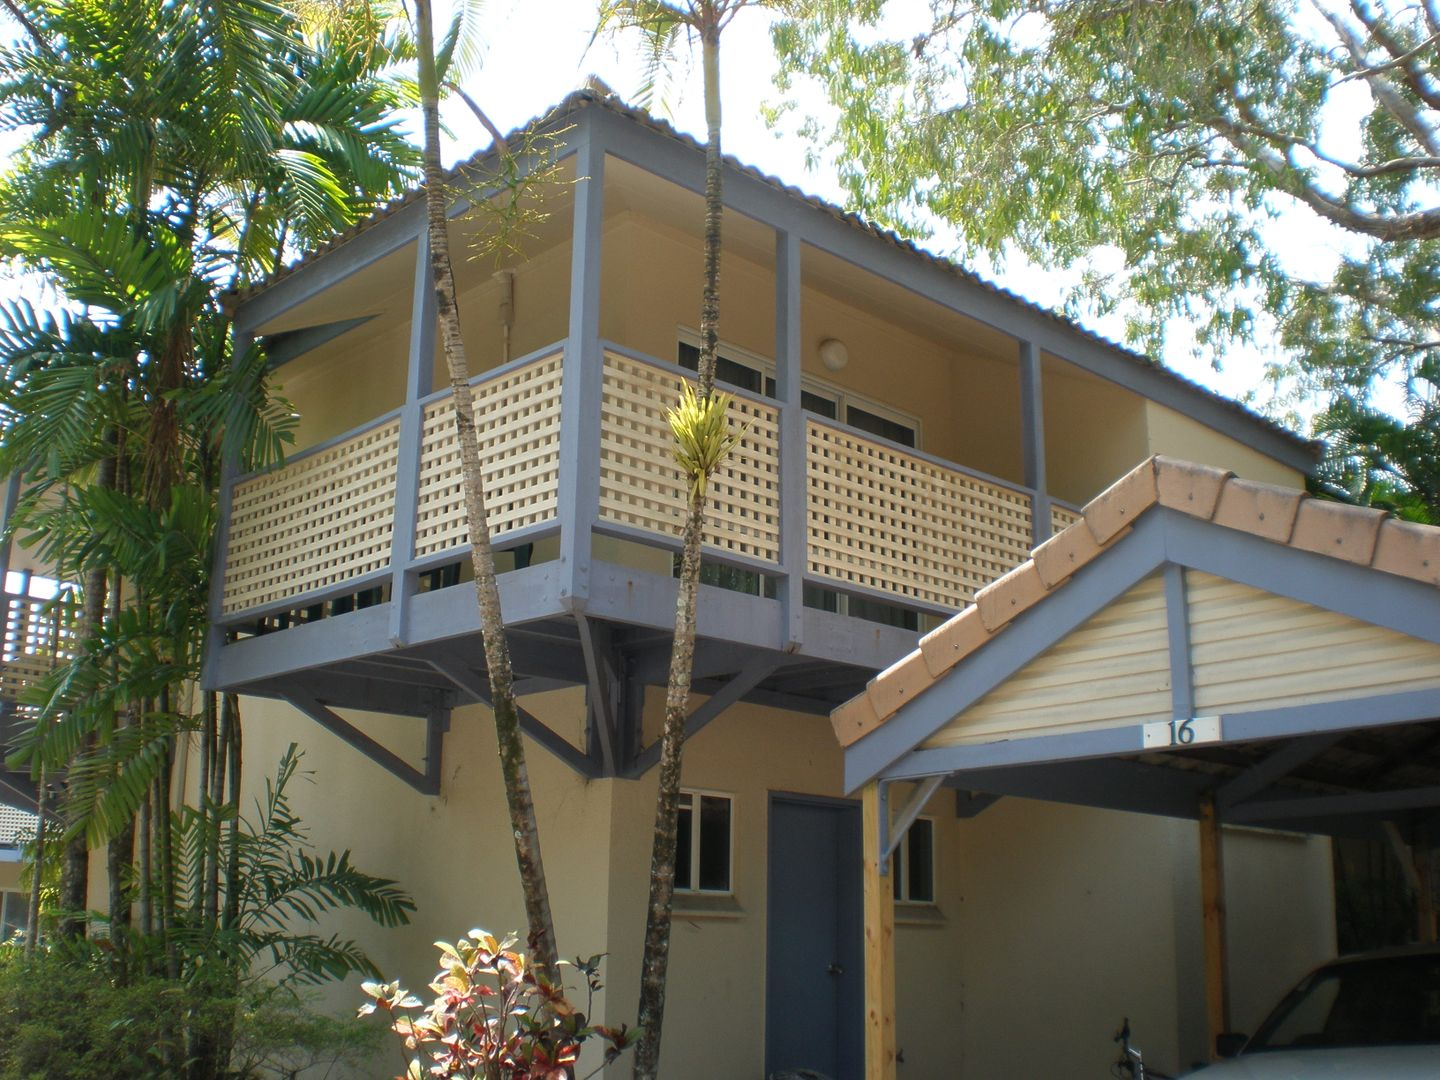 16 Reef Resort 121 Port Douglas Rd, Port Douglas QLD 4877, Image 0